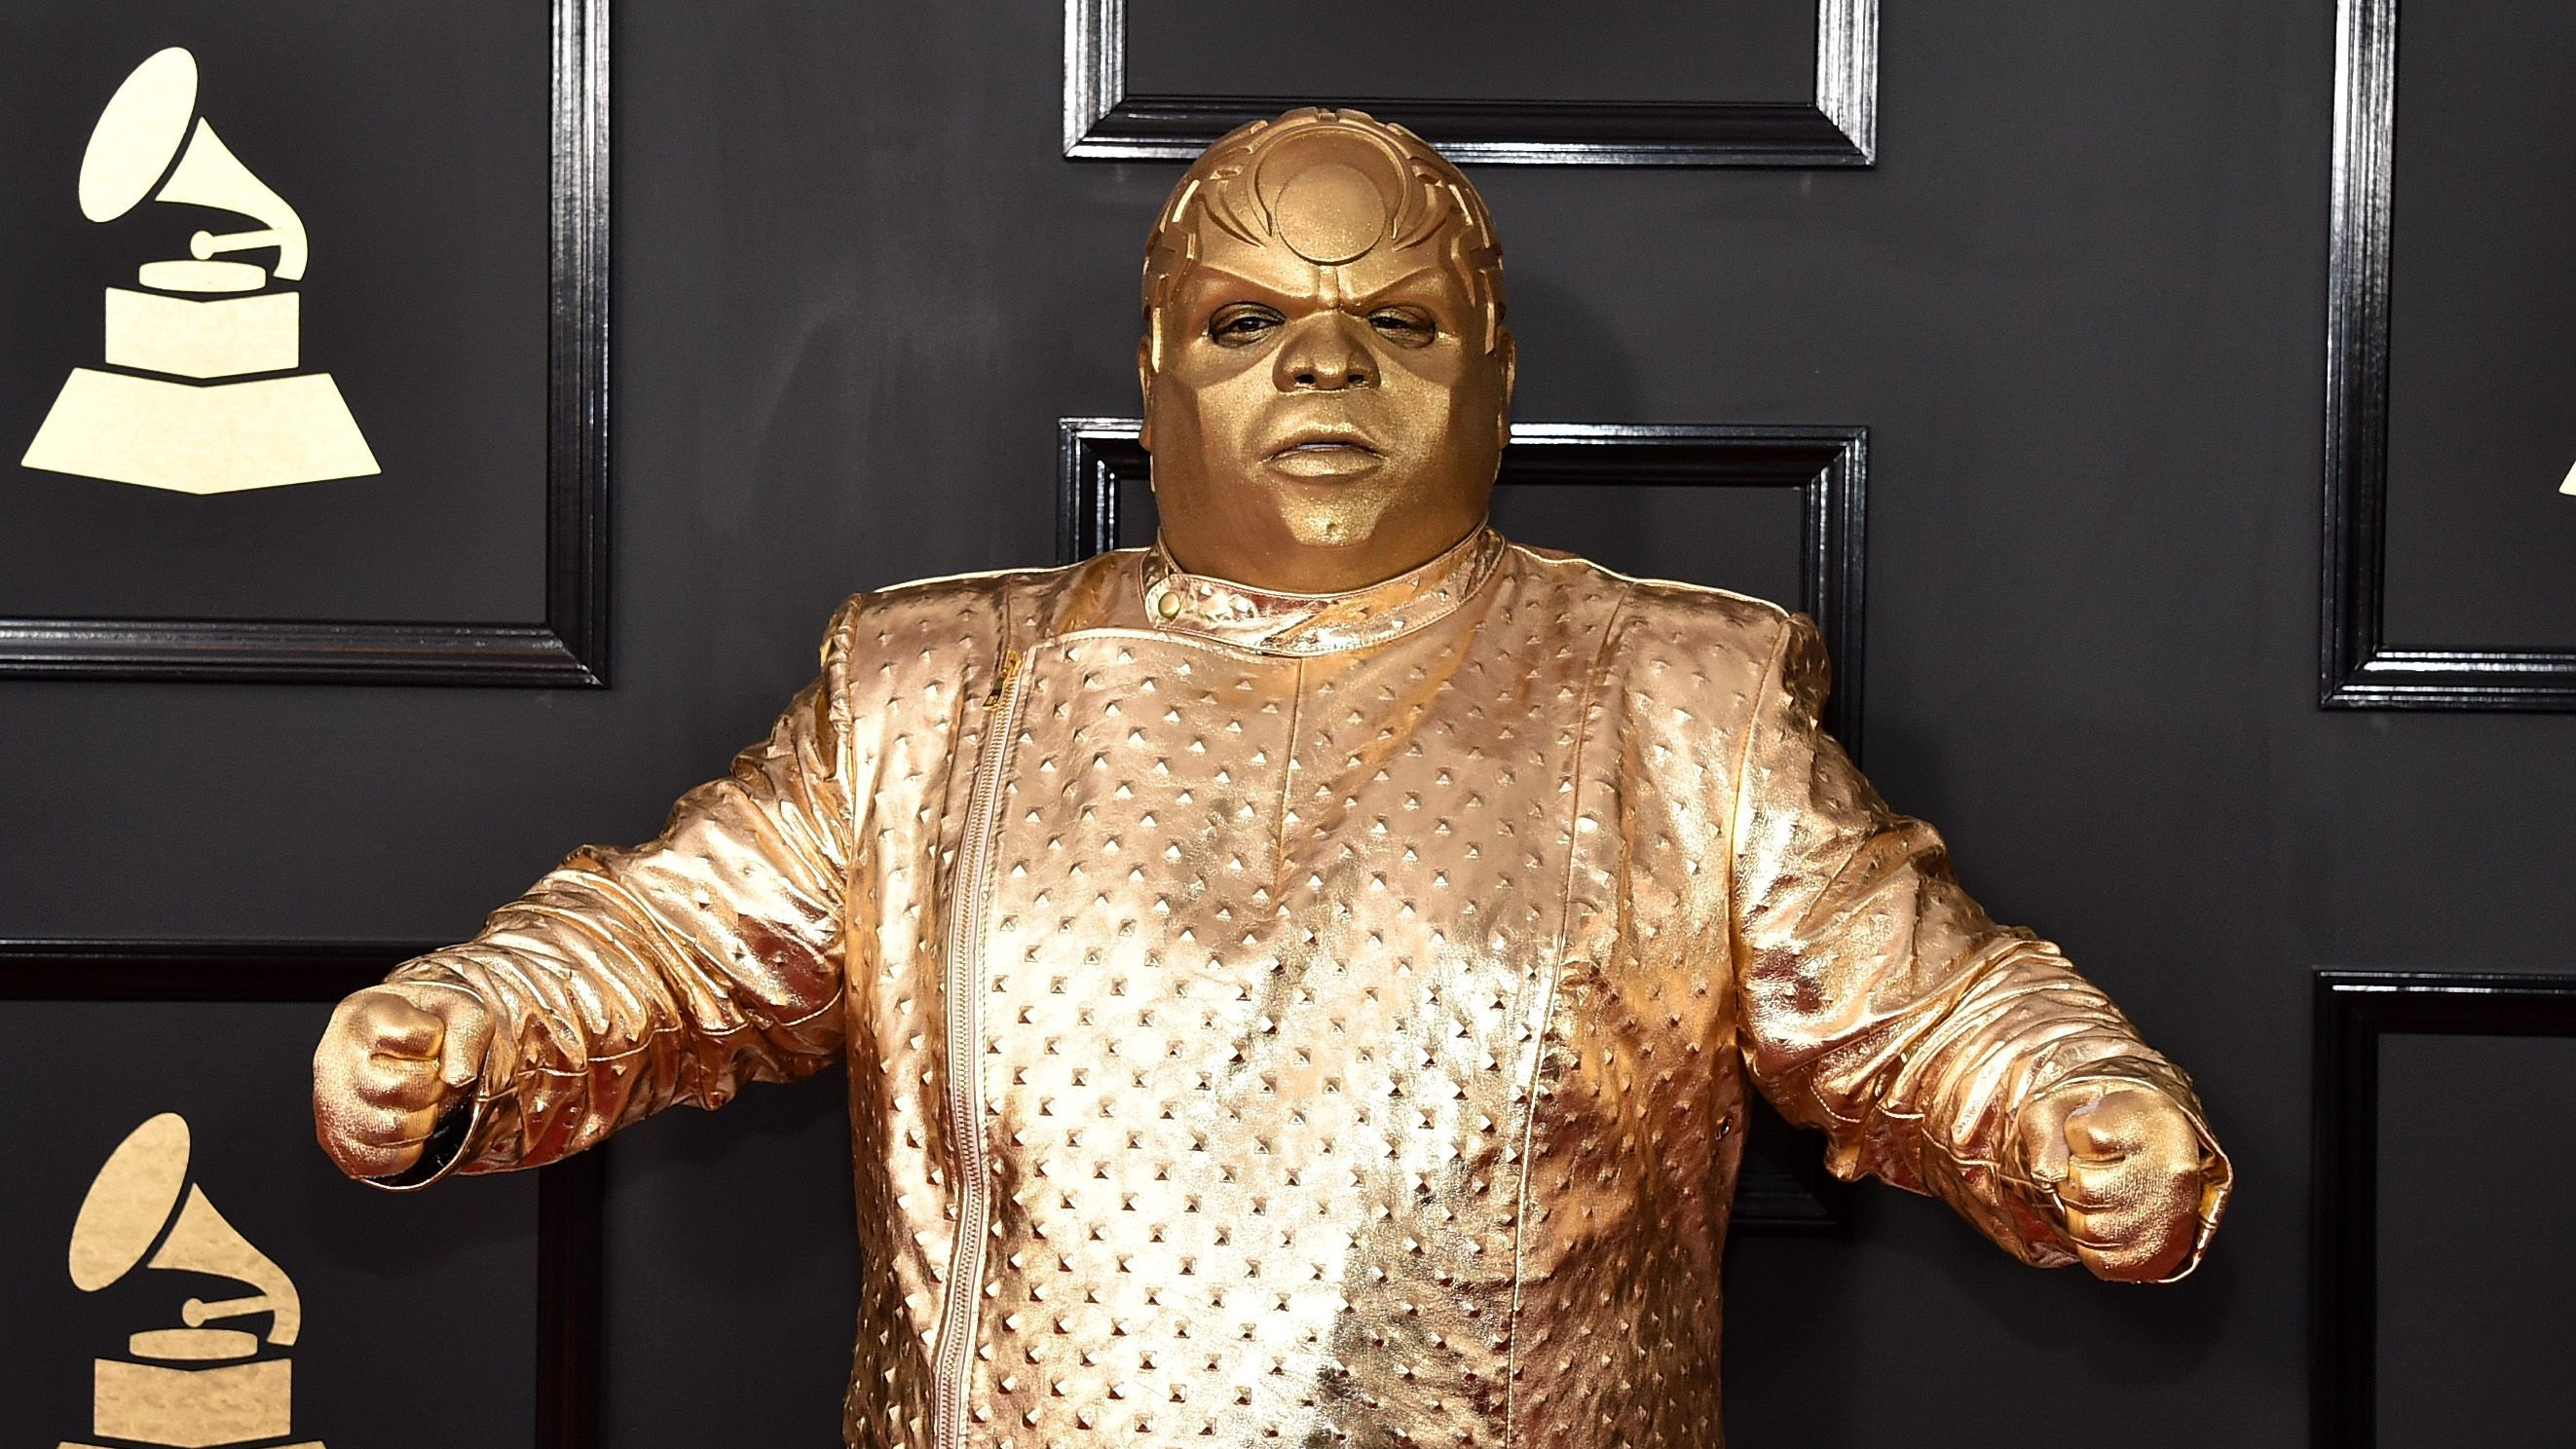 A Robot Version Of Cee Lo Green Dipped Himself In Gold For The Grammys Mtv